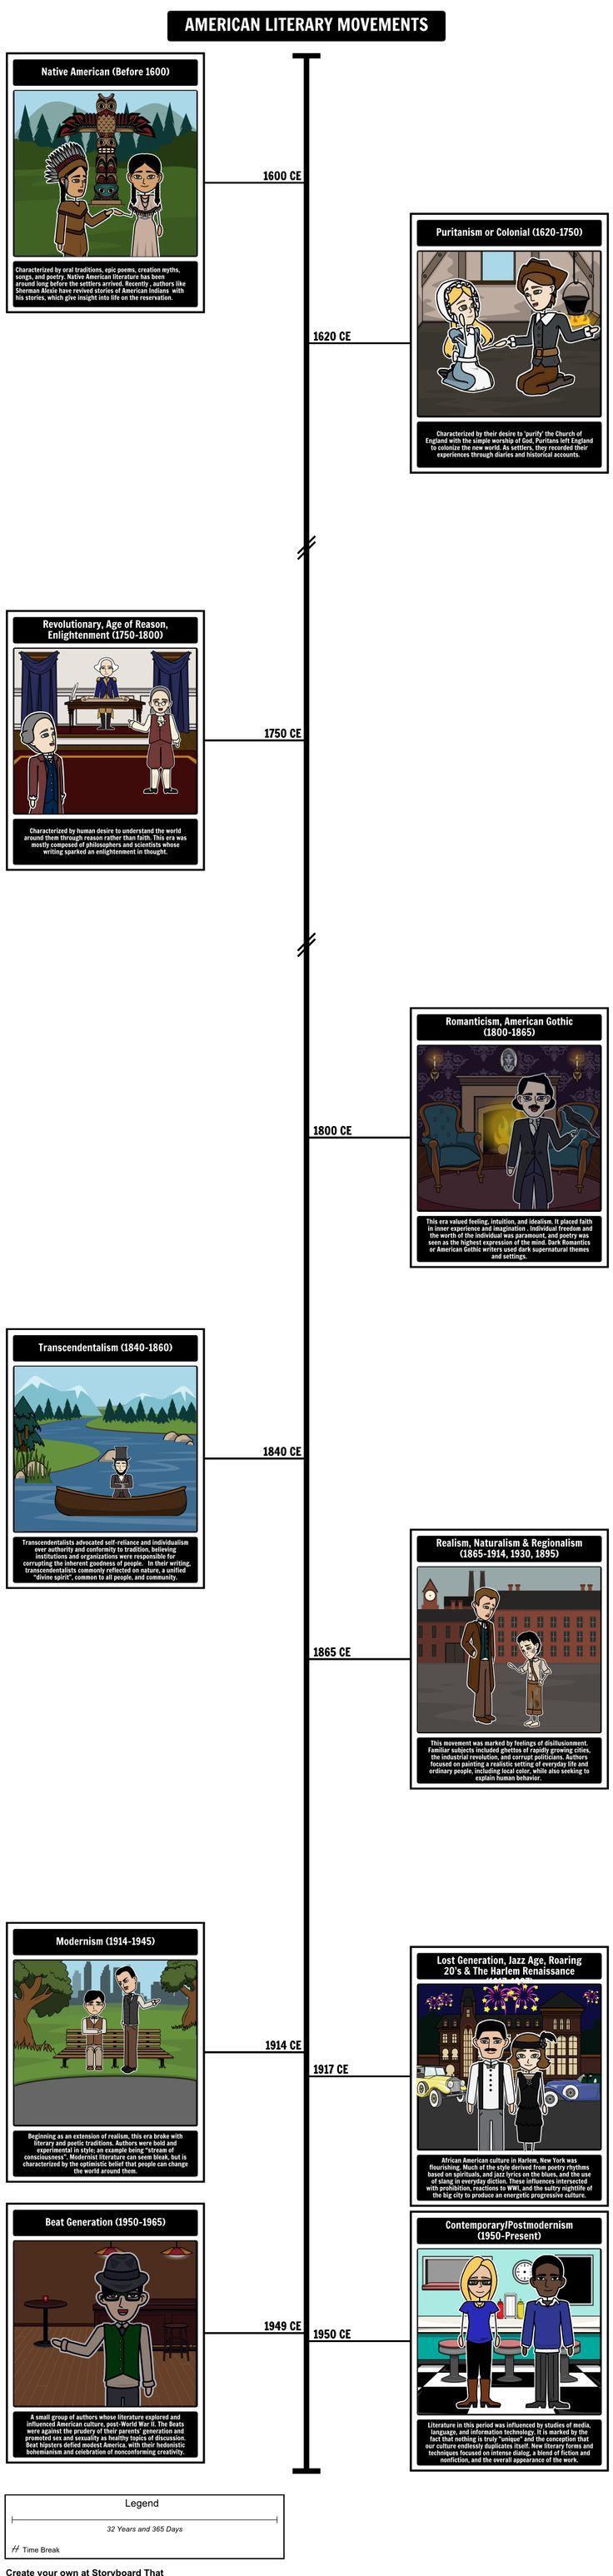 American Literary Movements - American Literary Movements Timeline: Using a timeline storyboard / graphic organizer, students should include examples of American Literature as well as of American Authors that fit into the different literary periods. Overall, this timeline should provide a summary of the American Literary Periods!